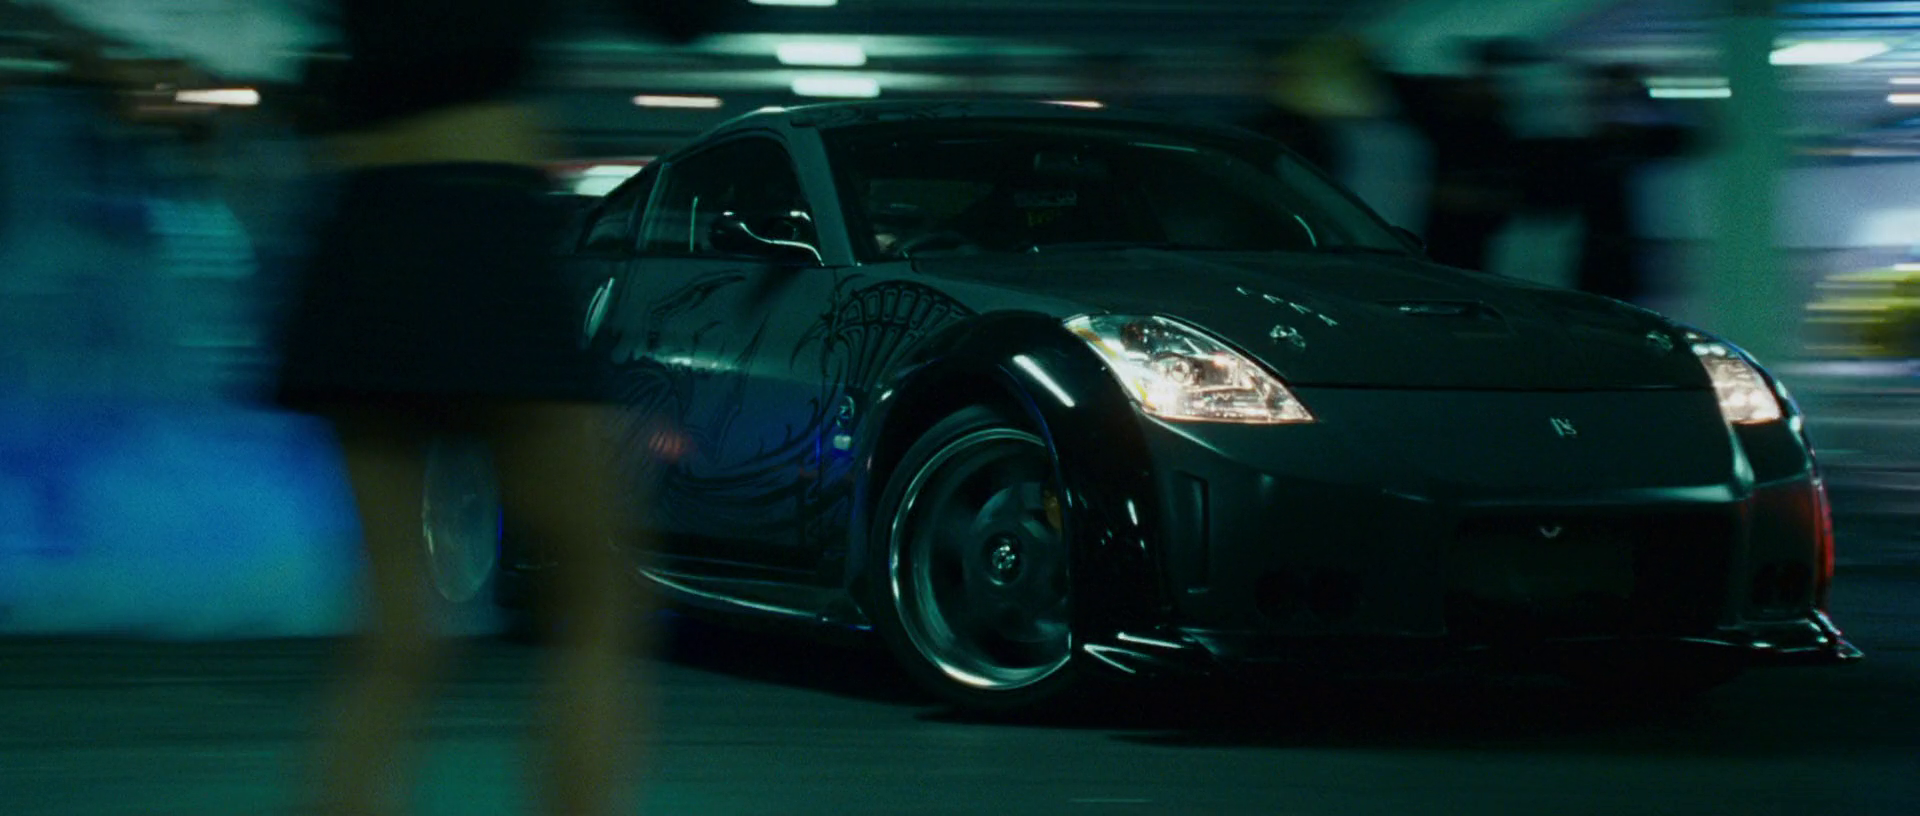 Image Takashi Car Park Drifting Png The Fast And The Furious